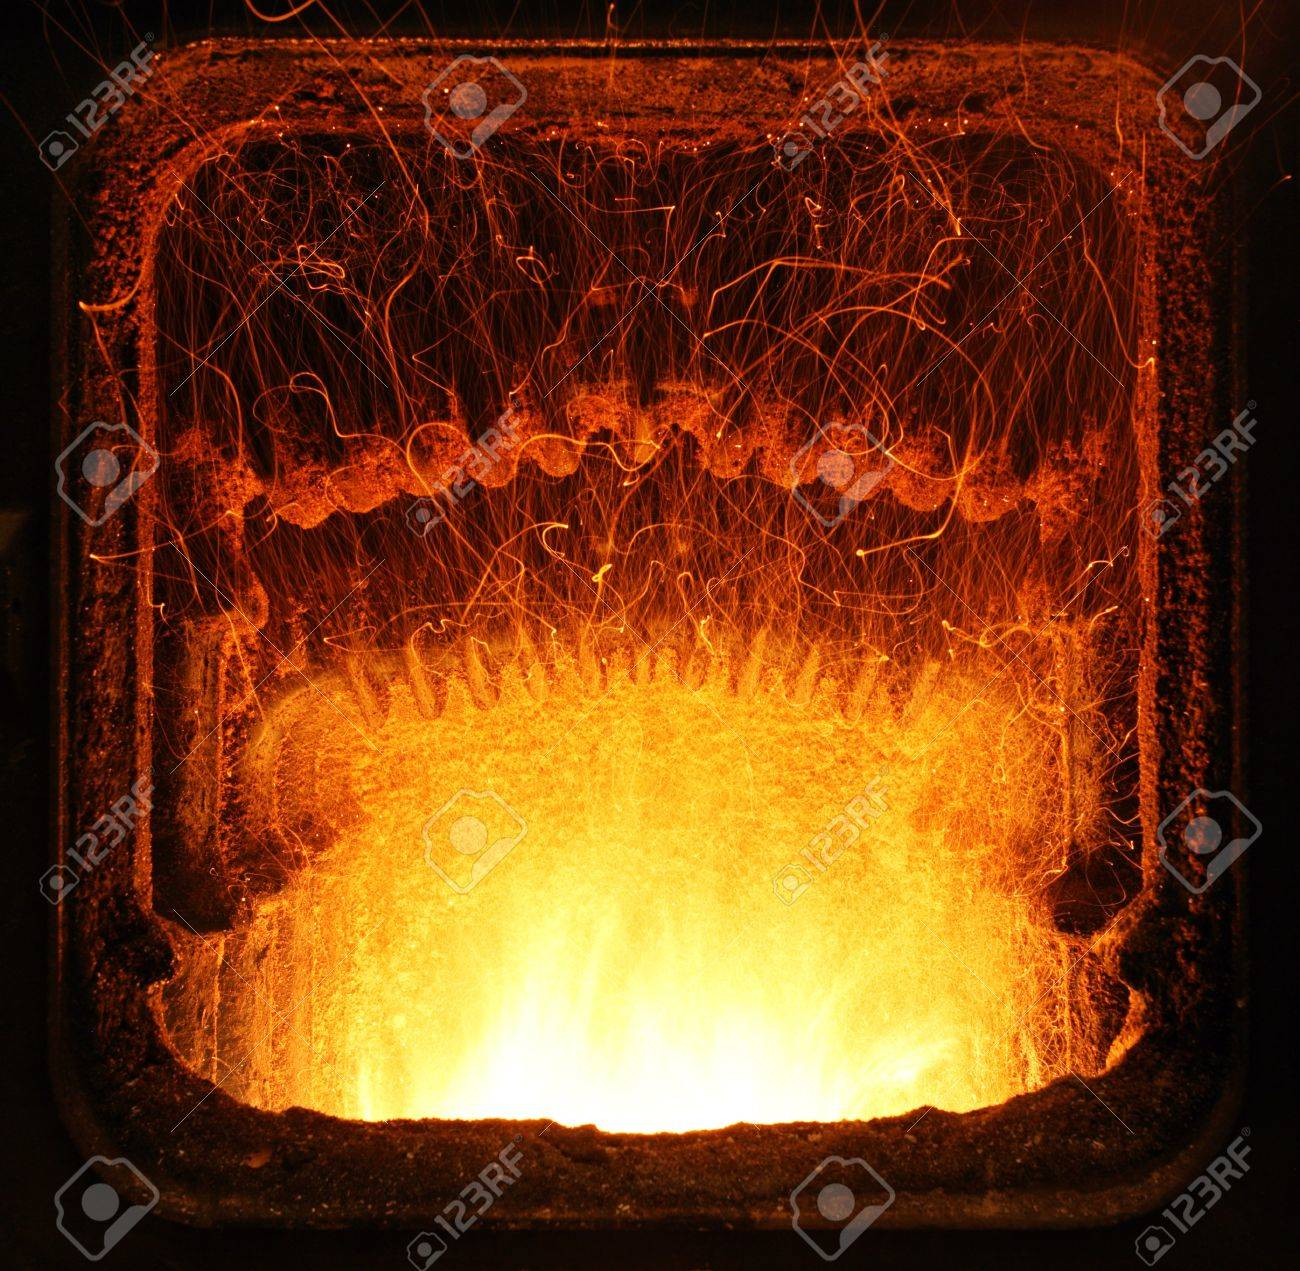 fire in furnace stock photo picture and royalty free image